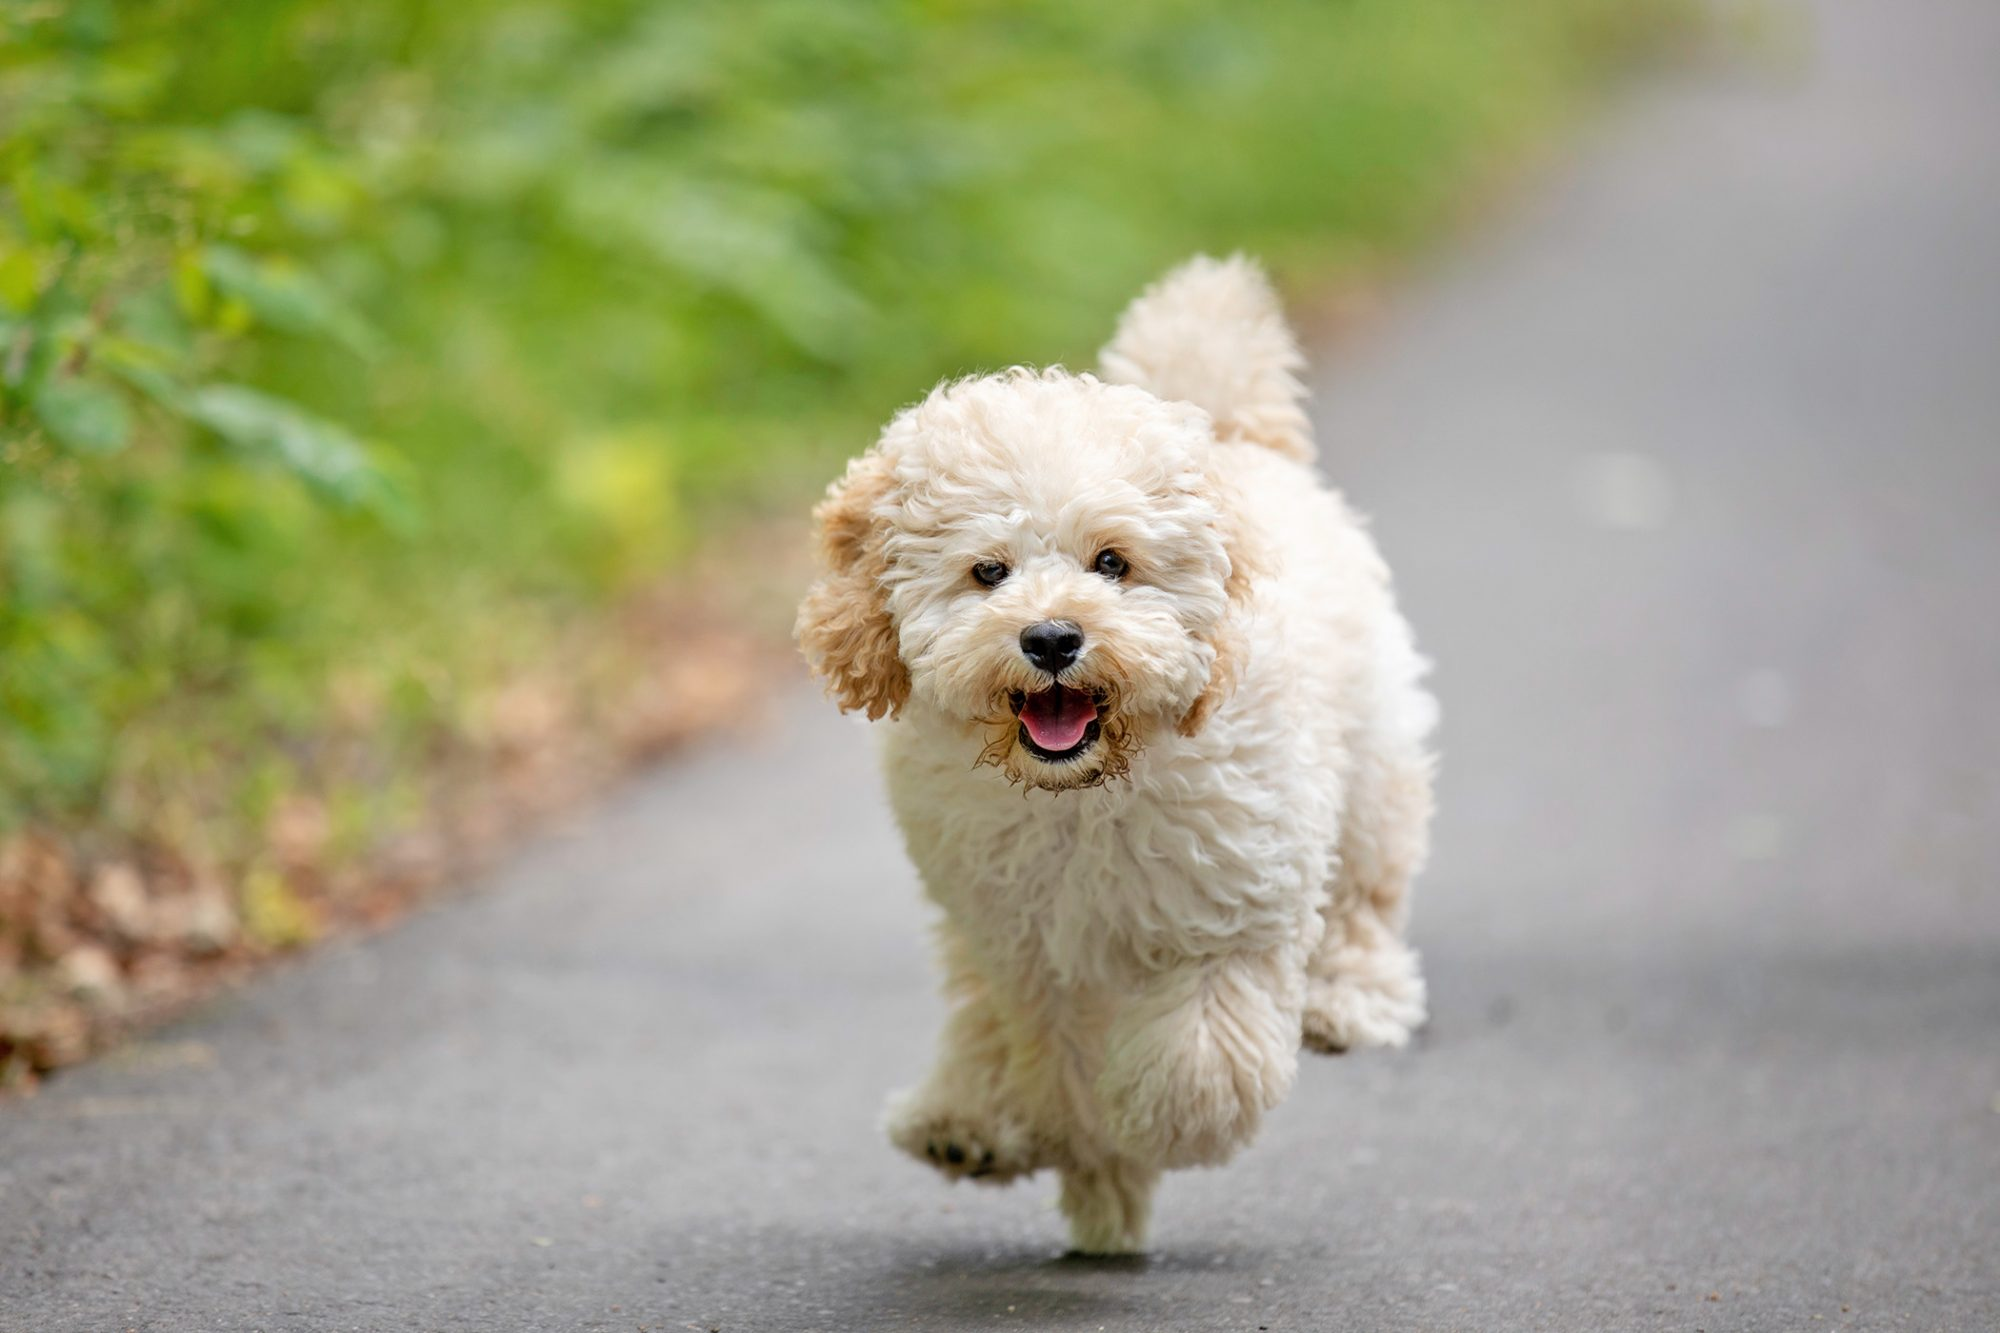 White Maltipoo puppy runs down paved country road